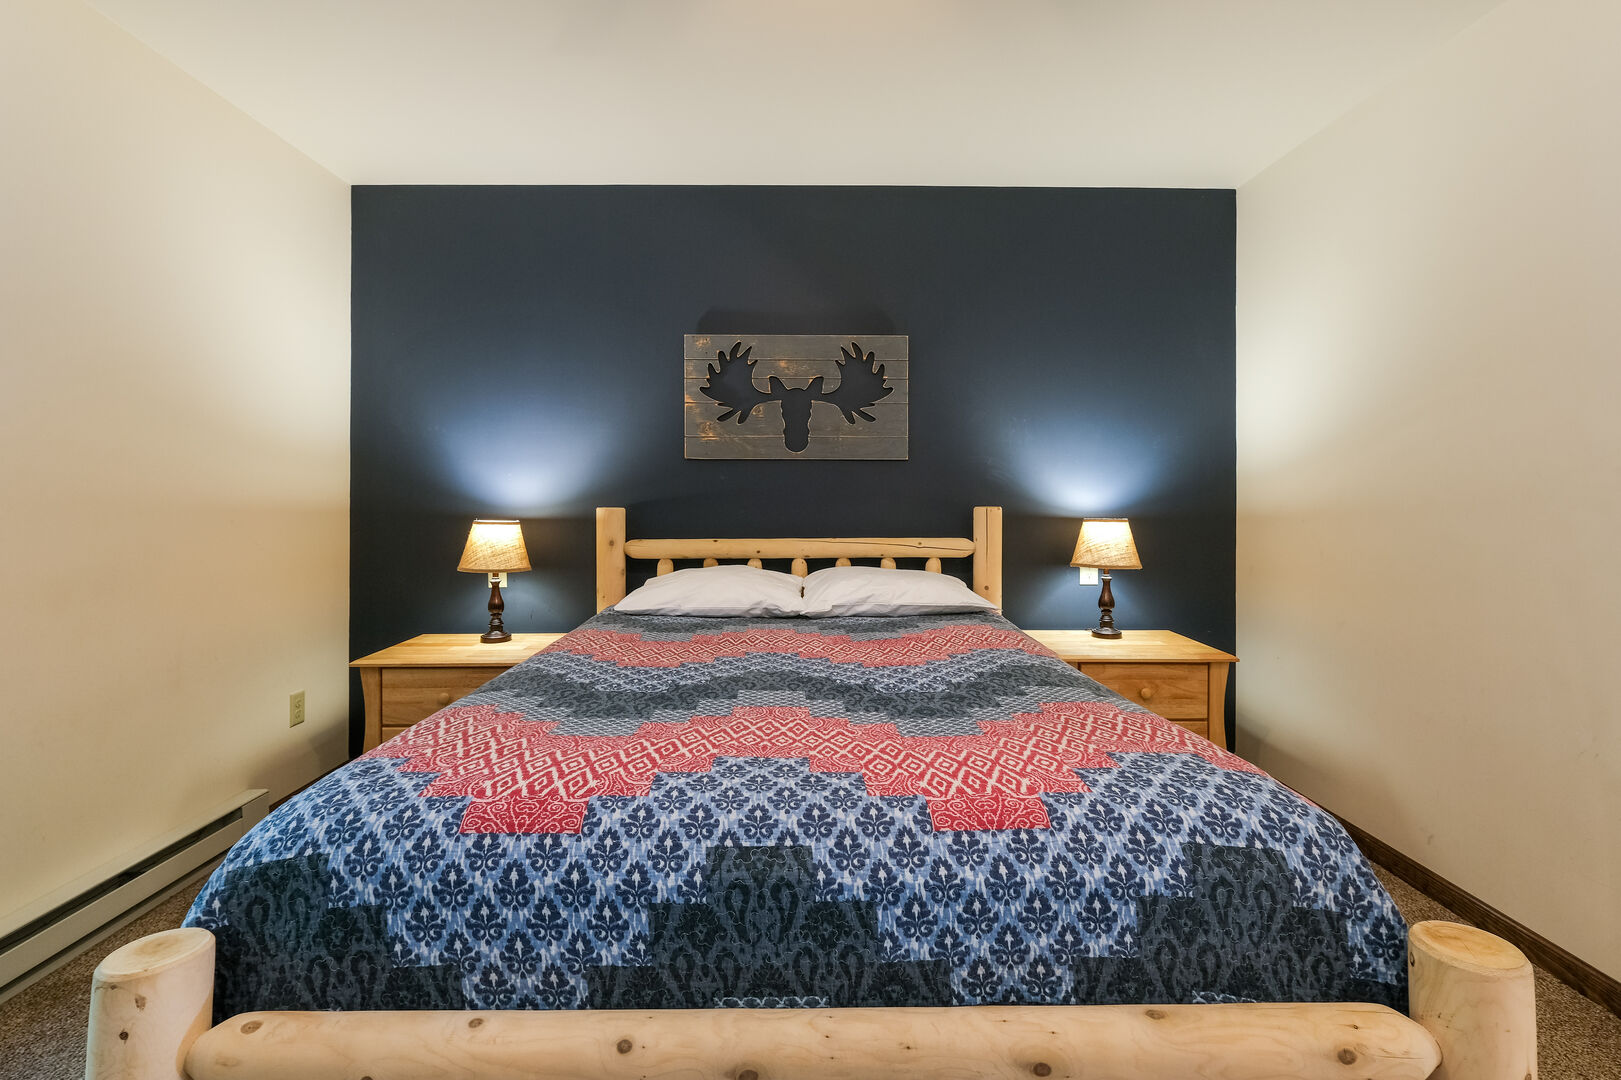 Bed with moose painting over it, nightstands on either side.